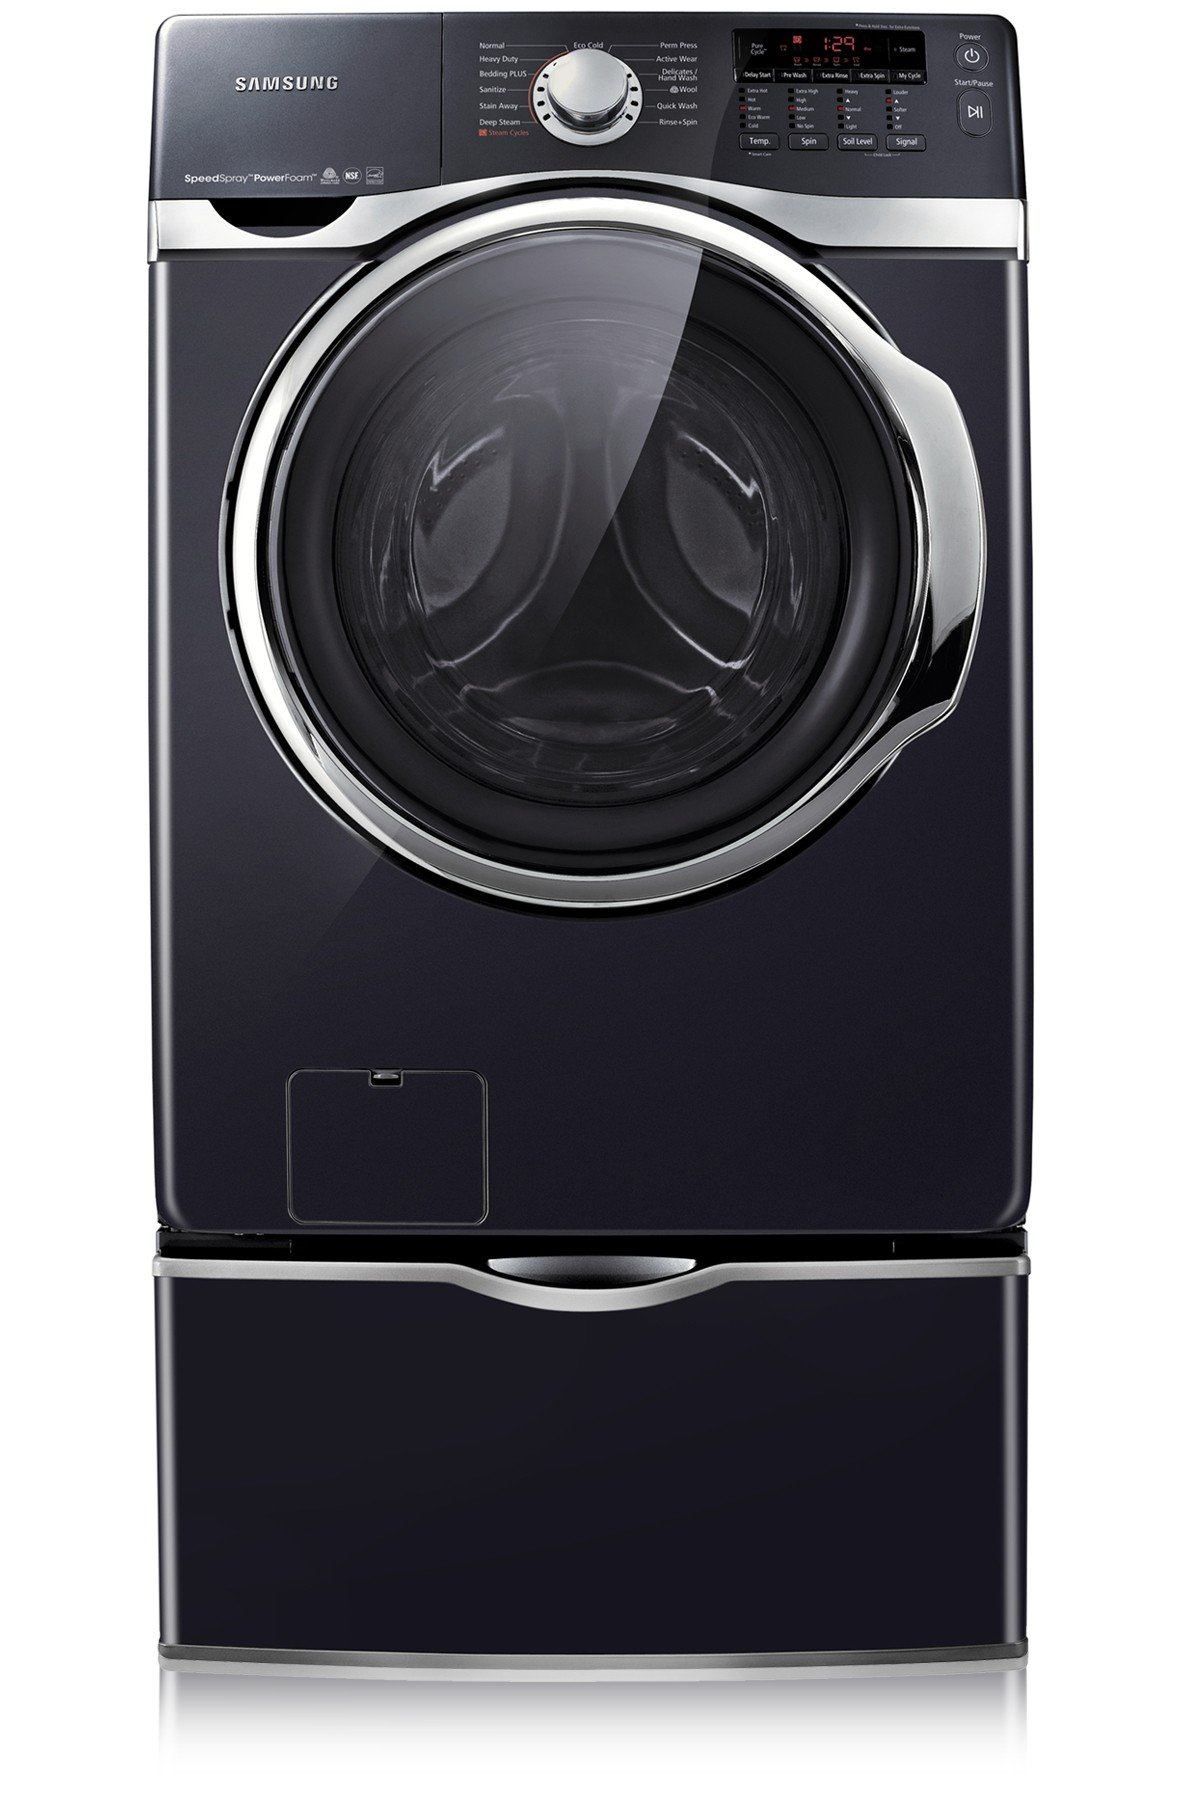 Samsung WF397UTPAGR Large Capacity Front-Load Steam Washer 4.6 cu.ft, Internal Heater, Pure Cycle technology, VRT technology, LED display